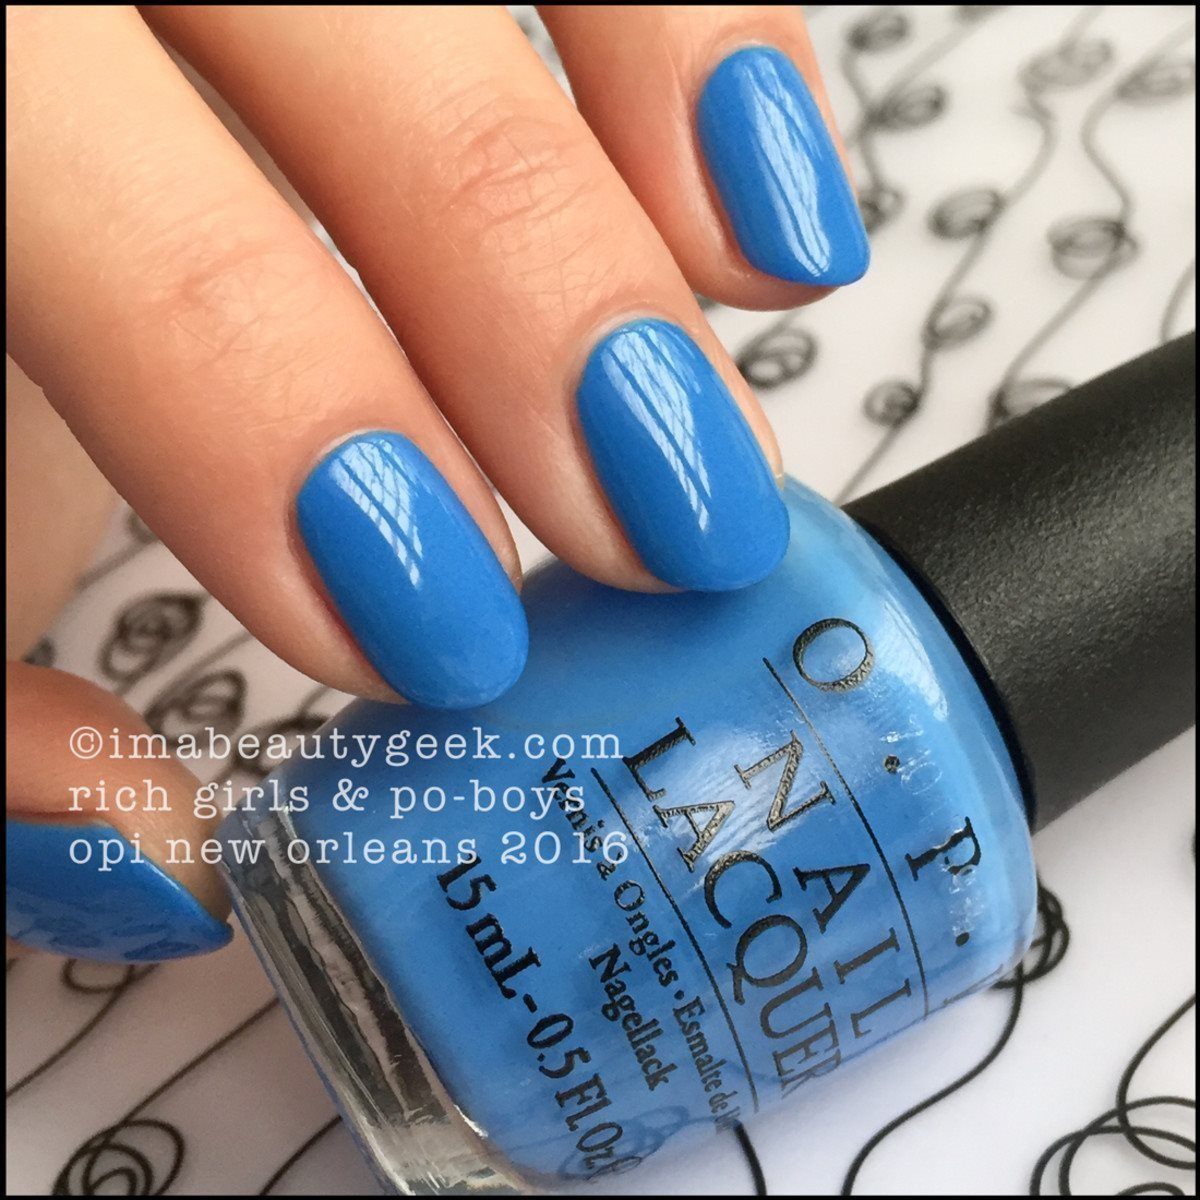 Opi nagellack 15 ml Rich girls po- boys